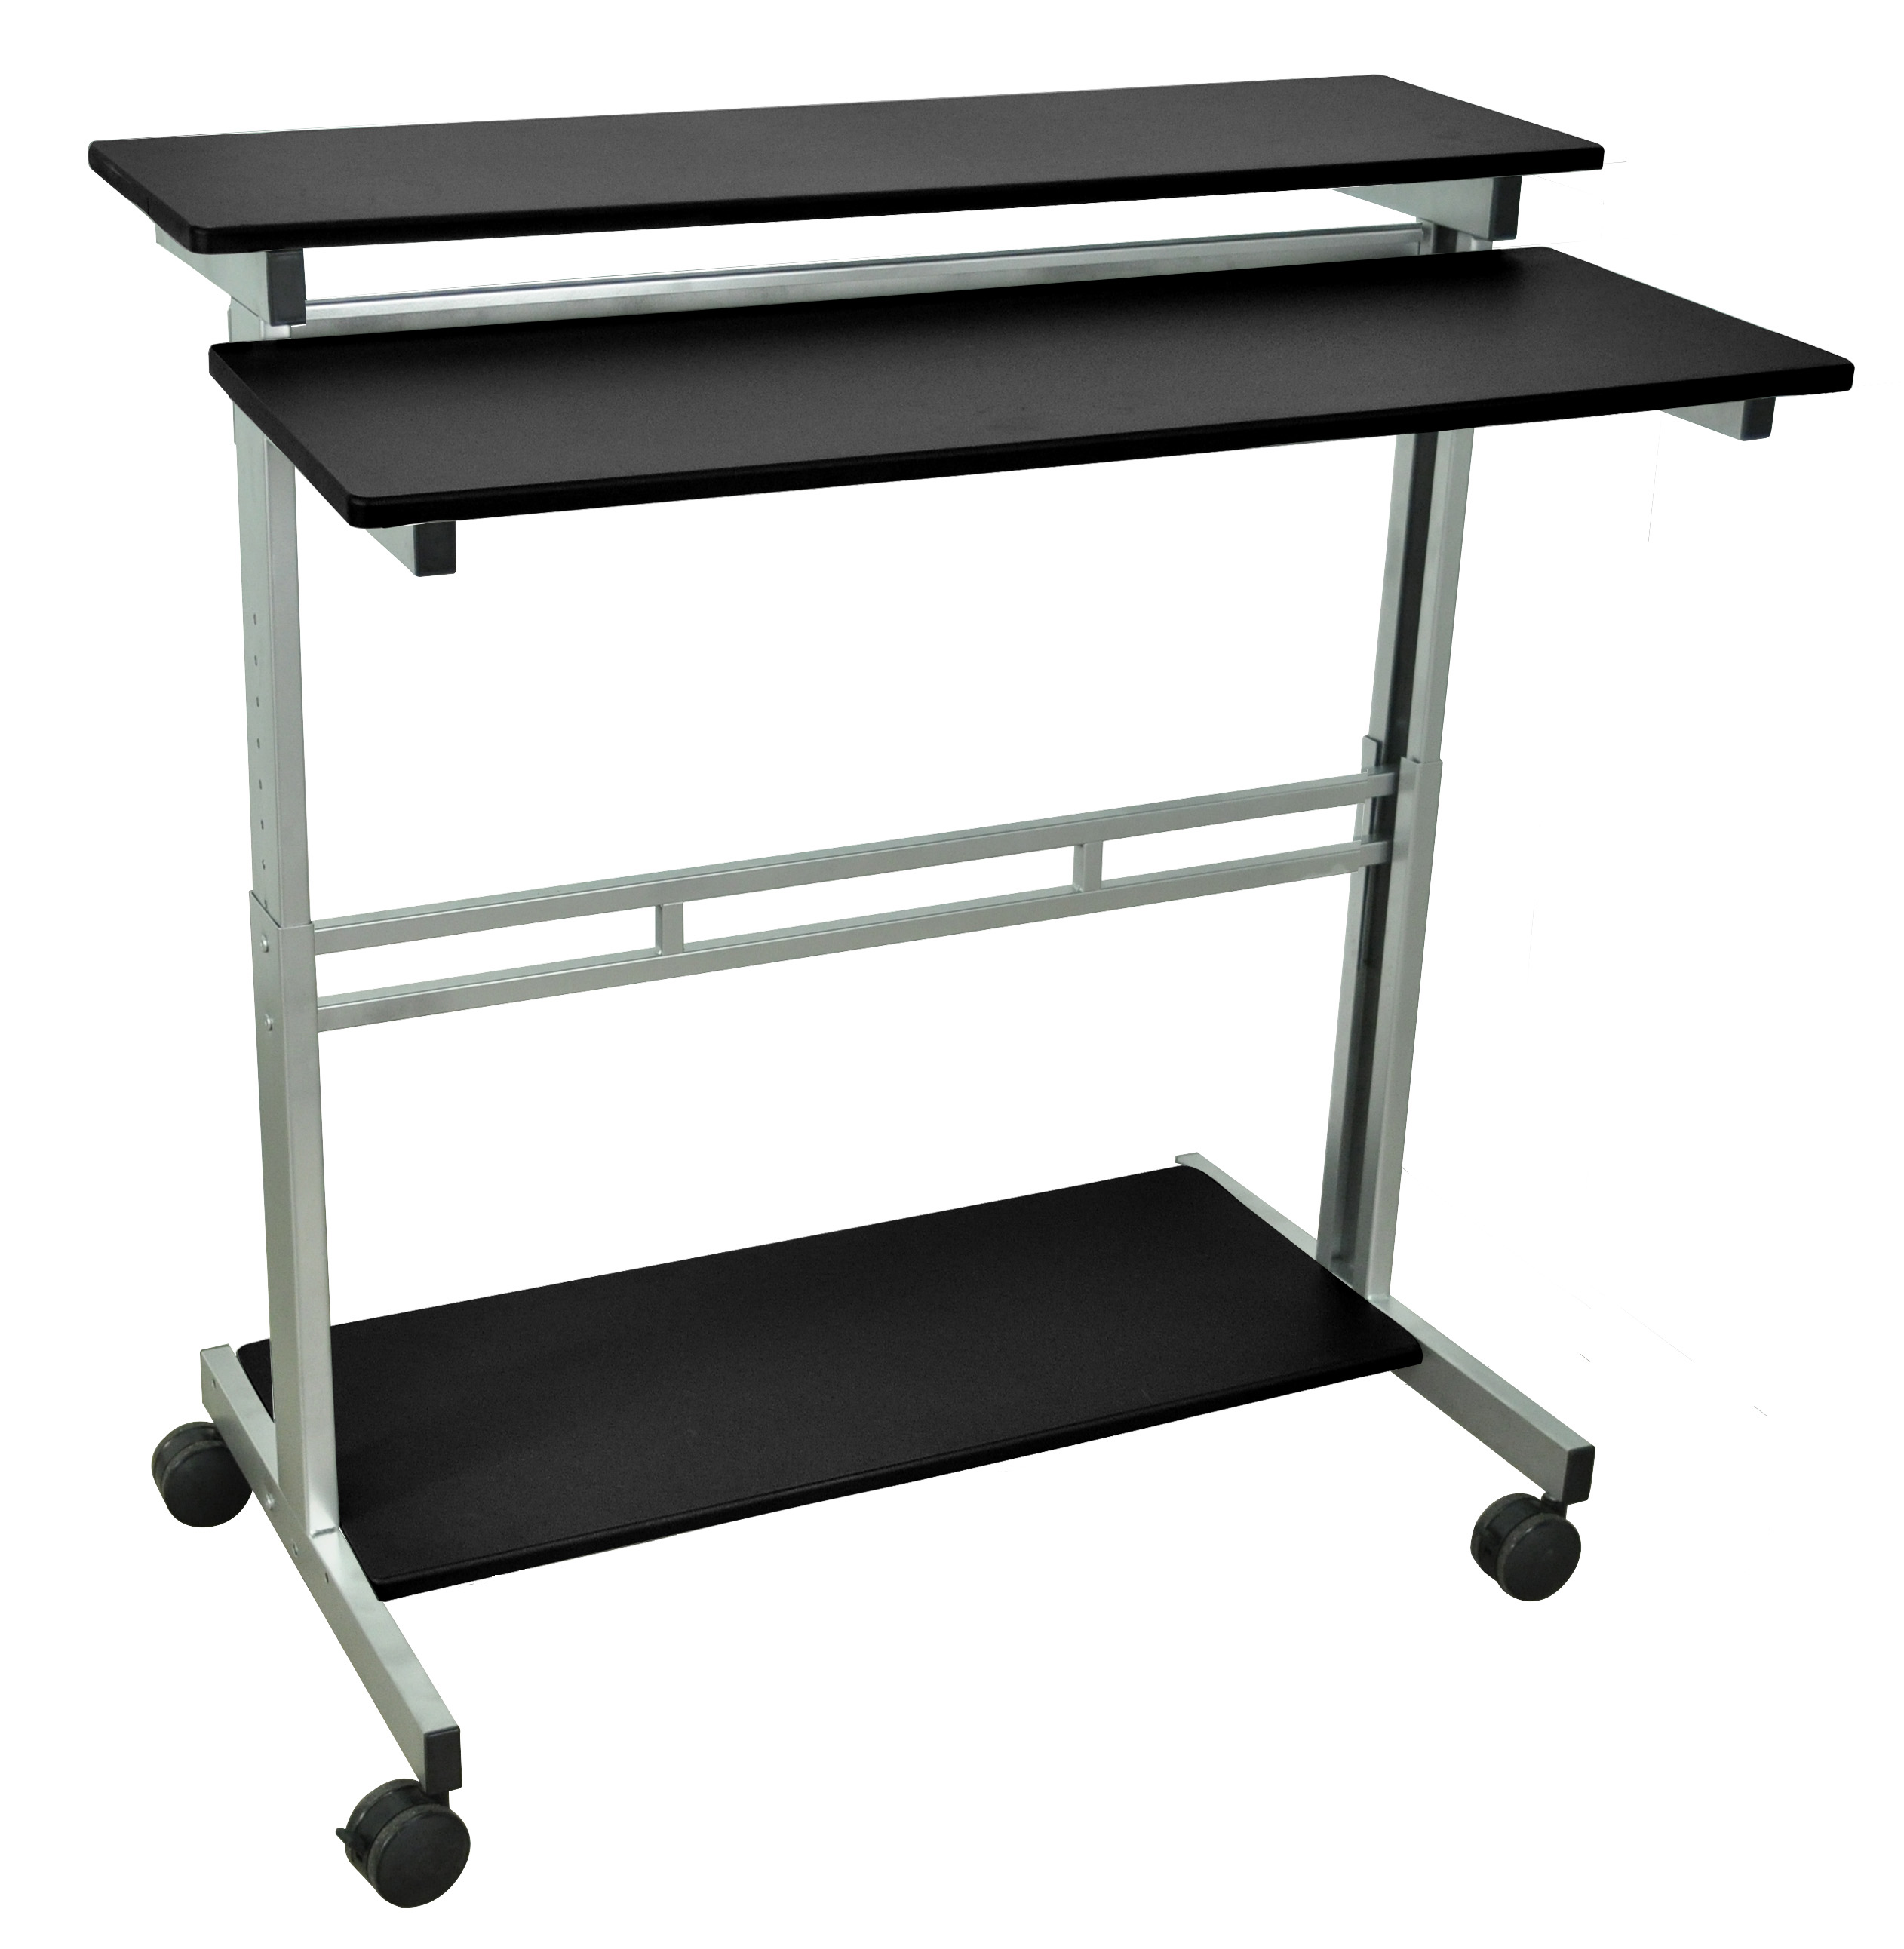 "Luxor 40"" Computer Laptop Stand Up Desk Workstation - Black, 1 Pack"